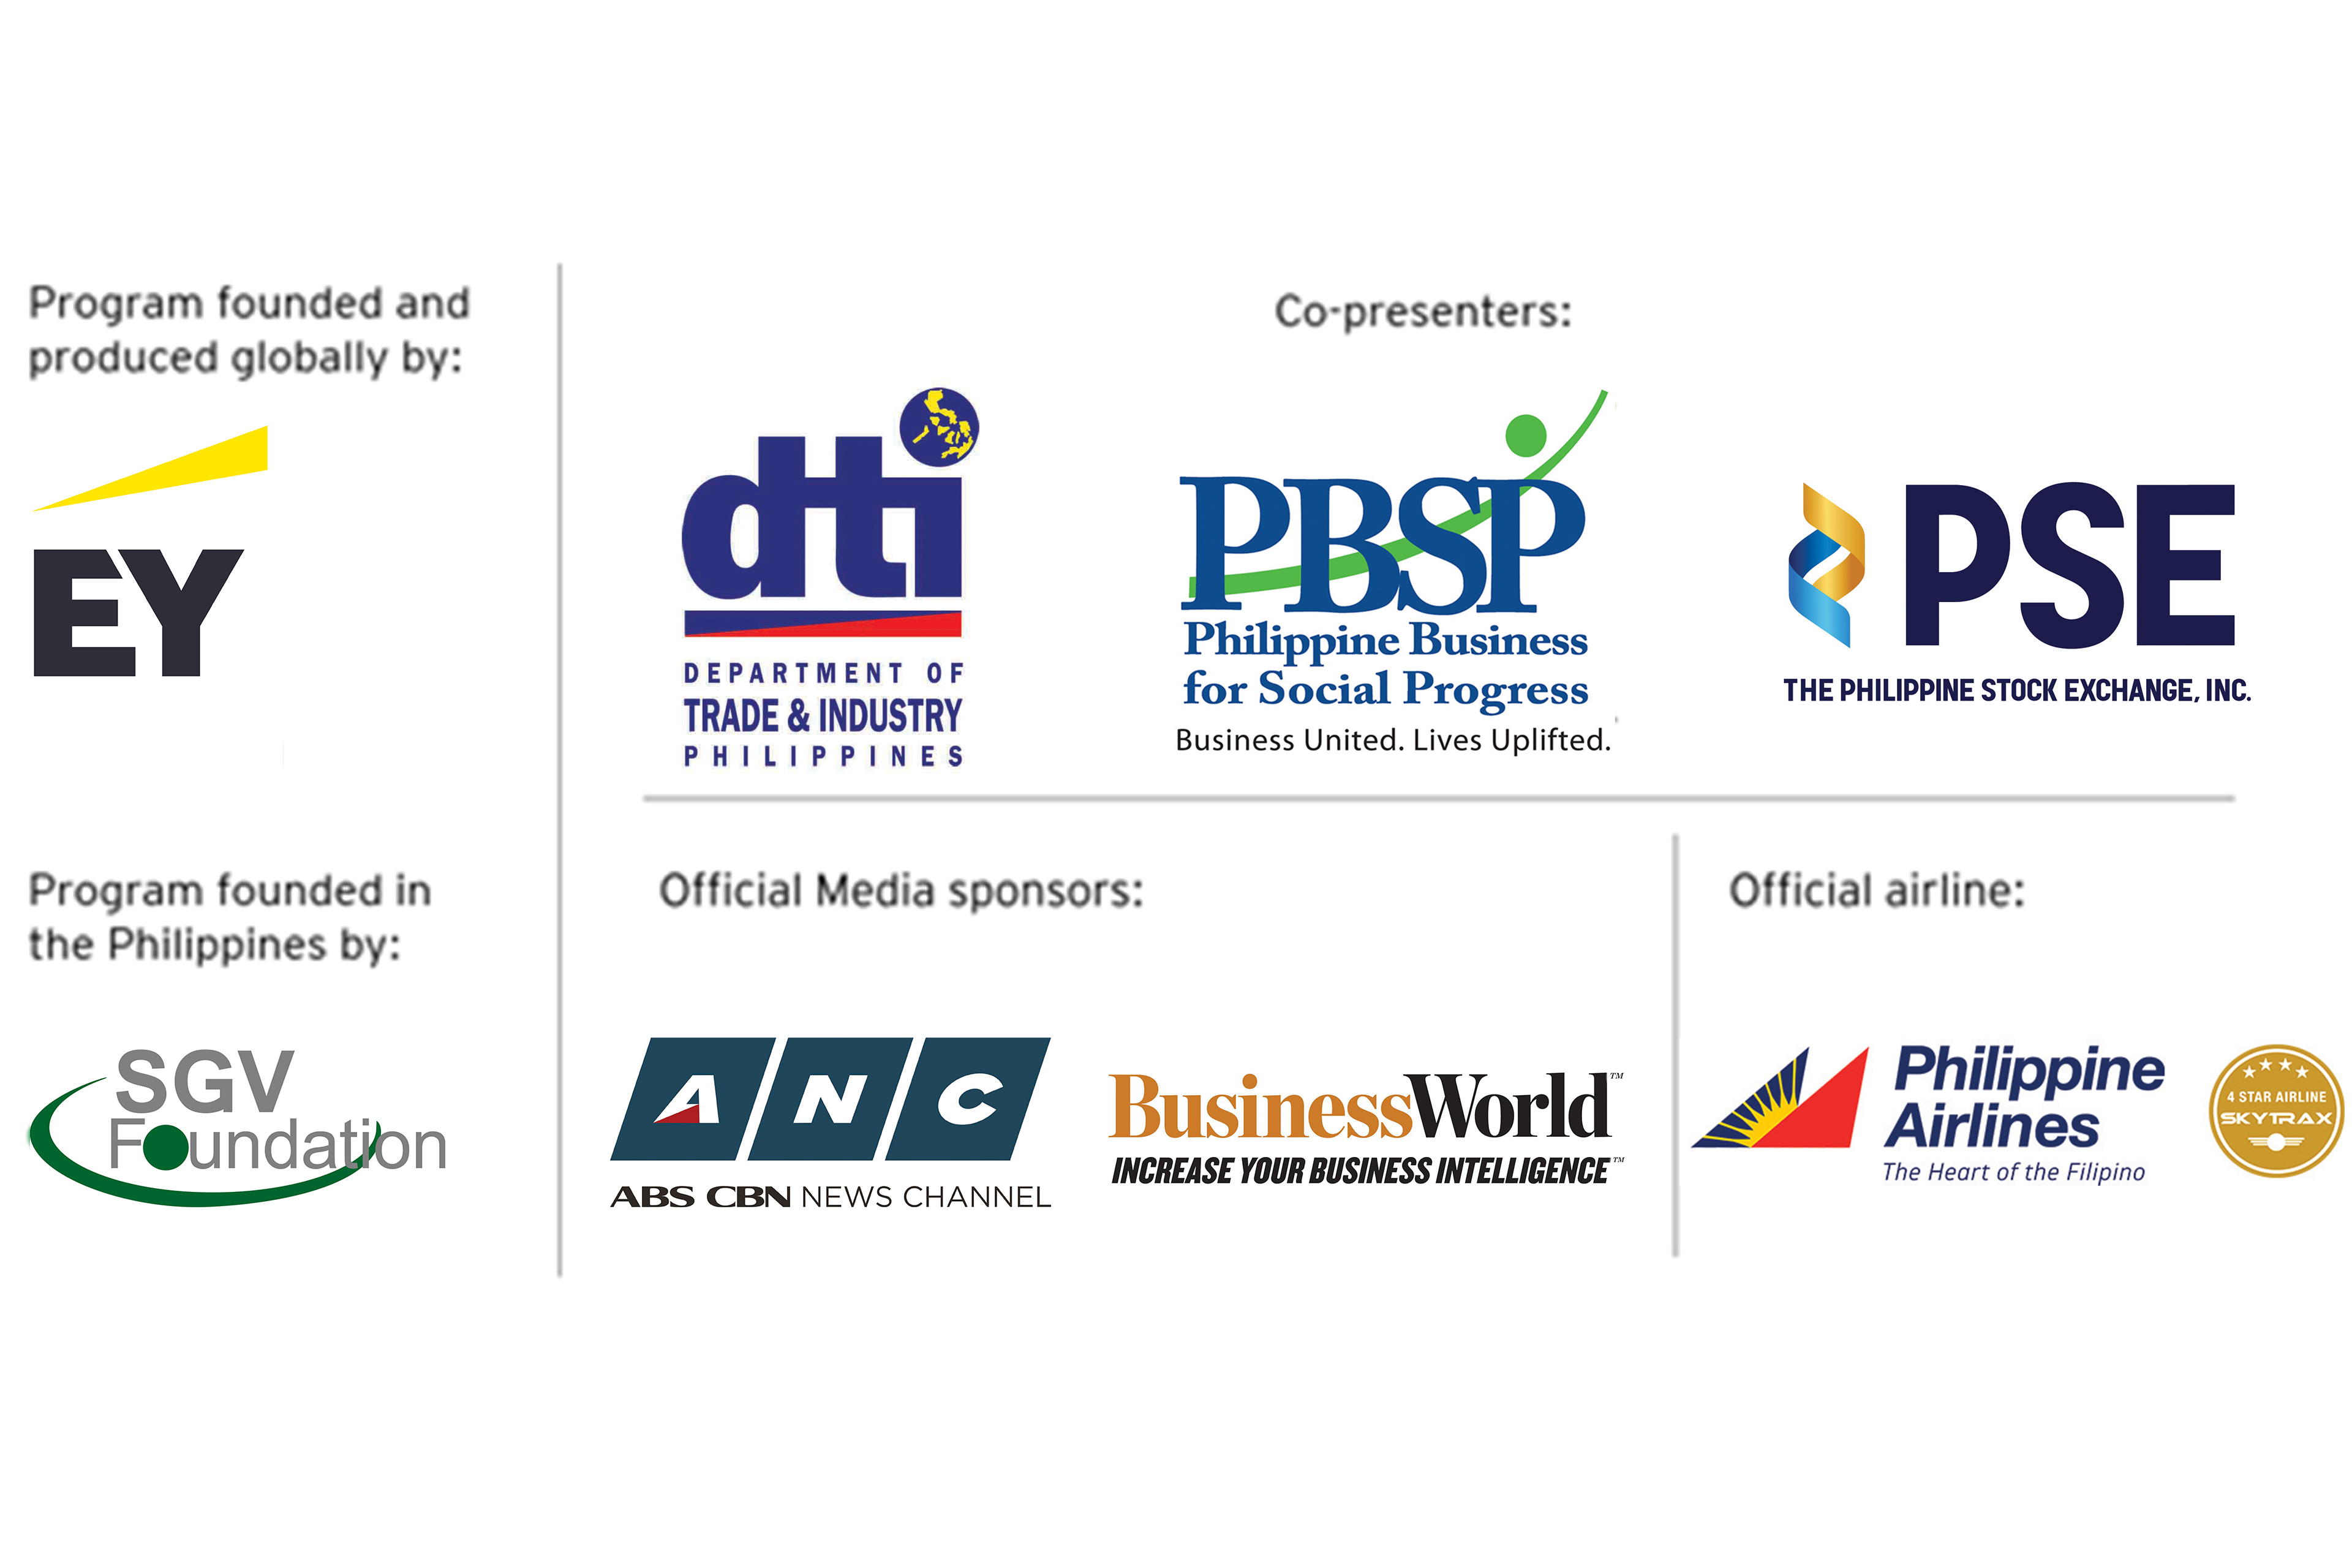 Sponsors and co-presenters